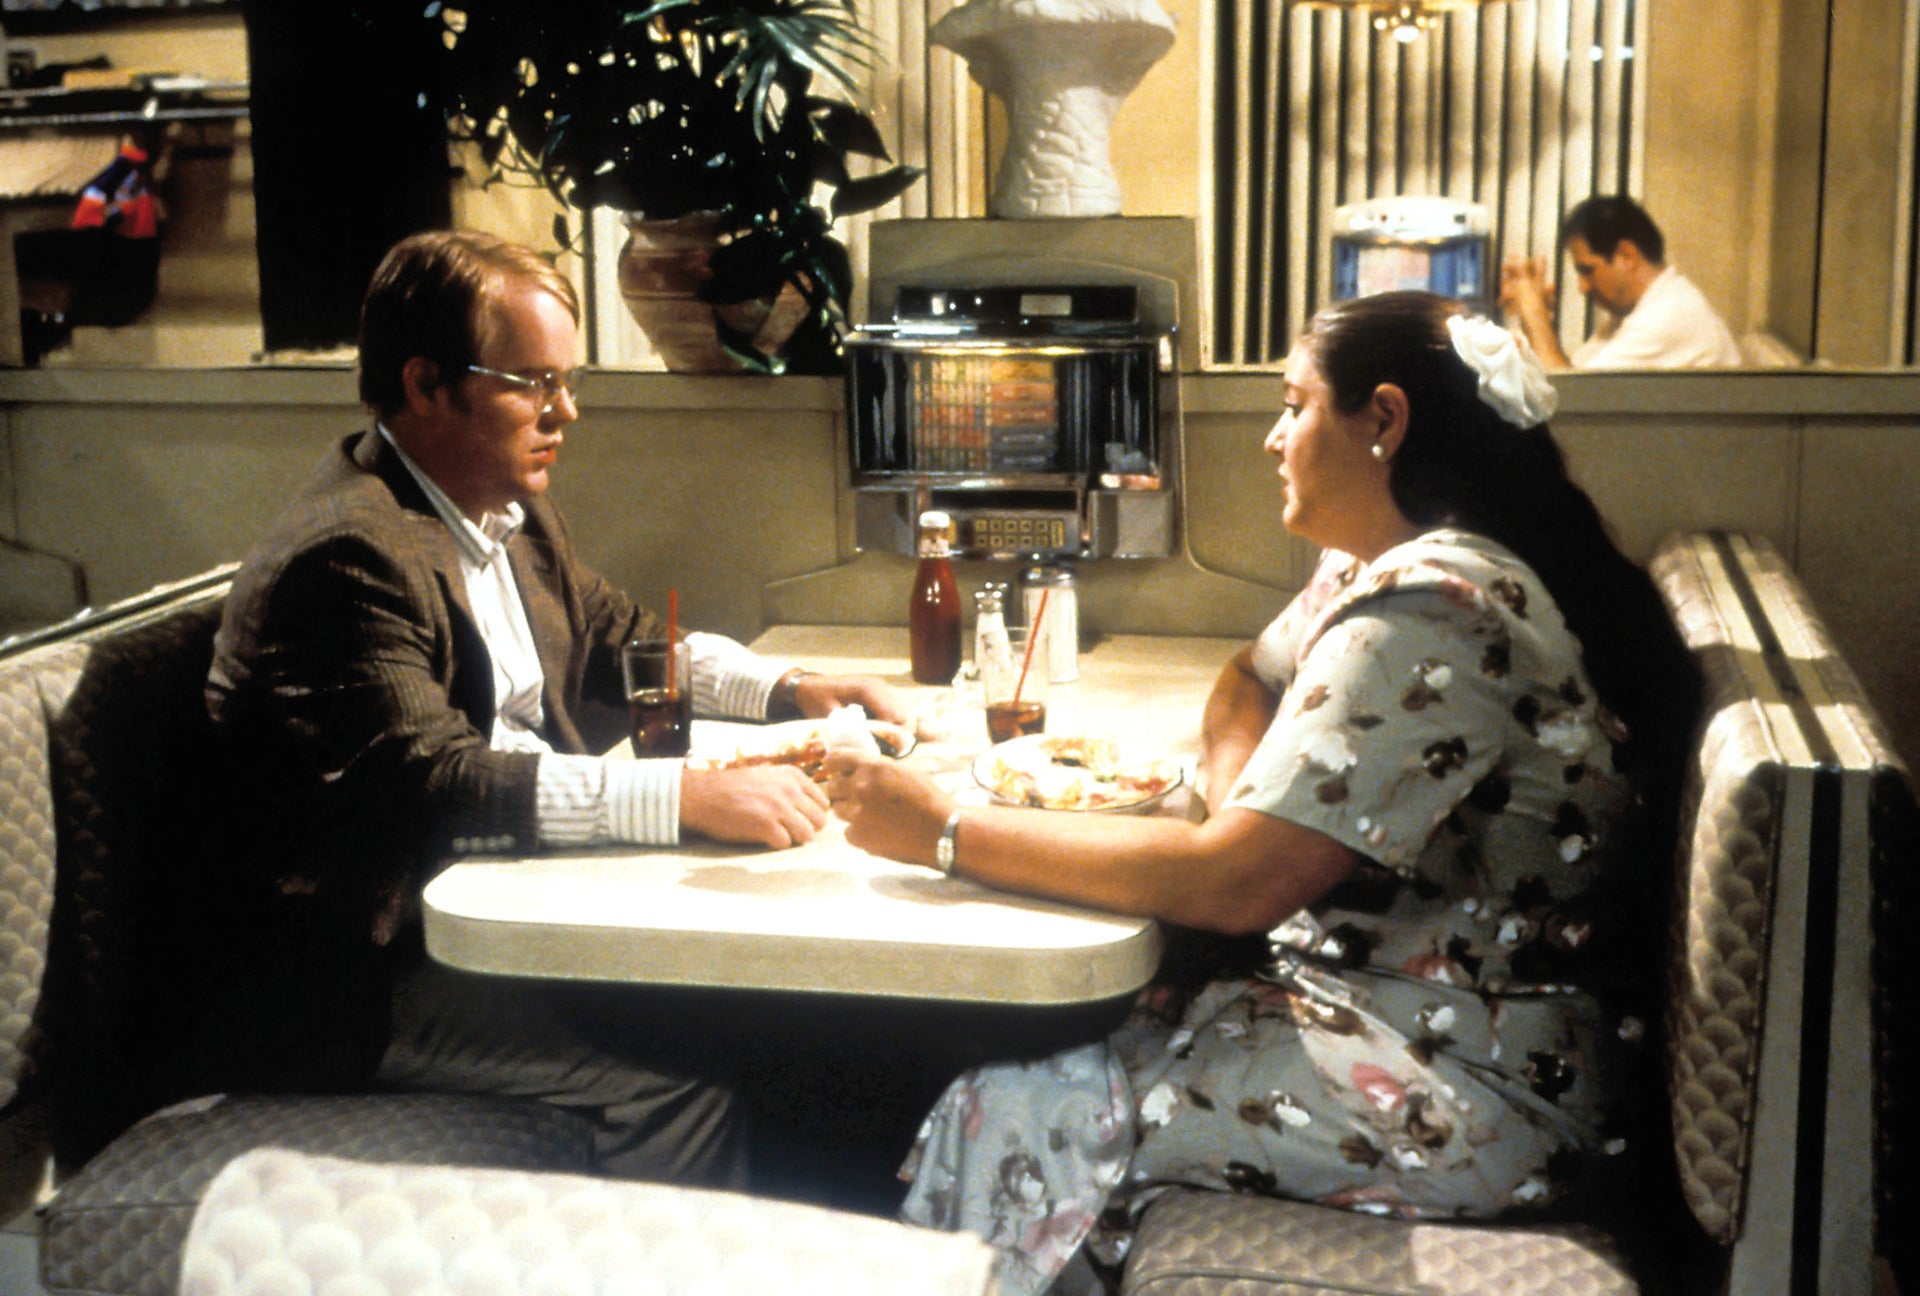 Philip Seymour Hoffman and Camryn Manheim in a scene from the film 'Happiness,' 1998.